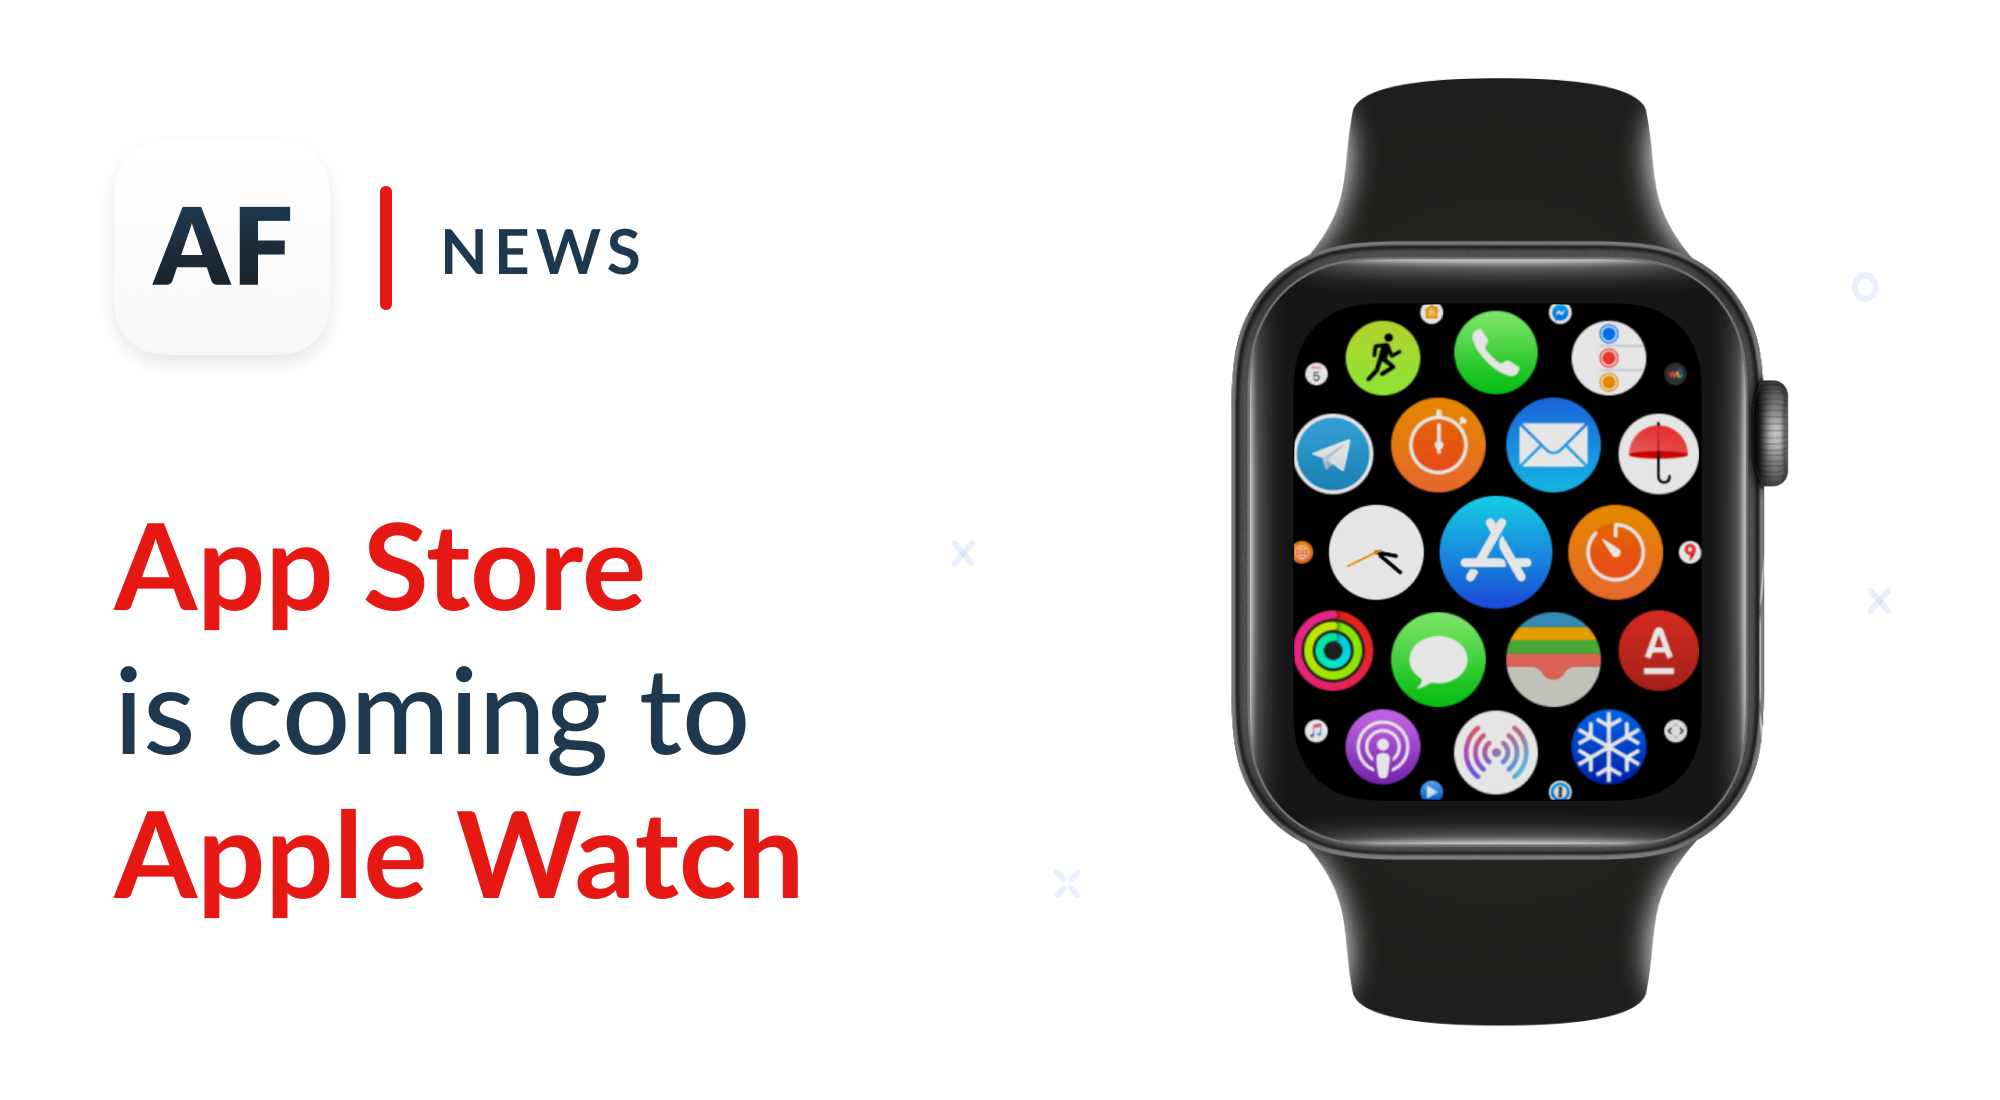 Apple Watch App Store ASO